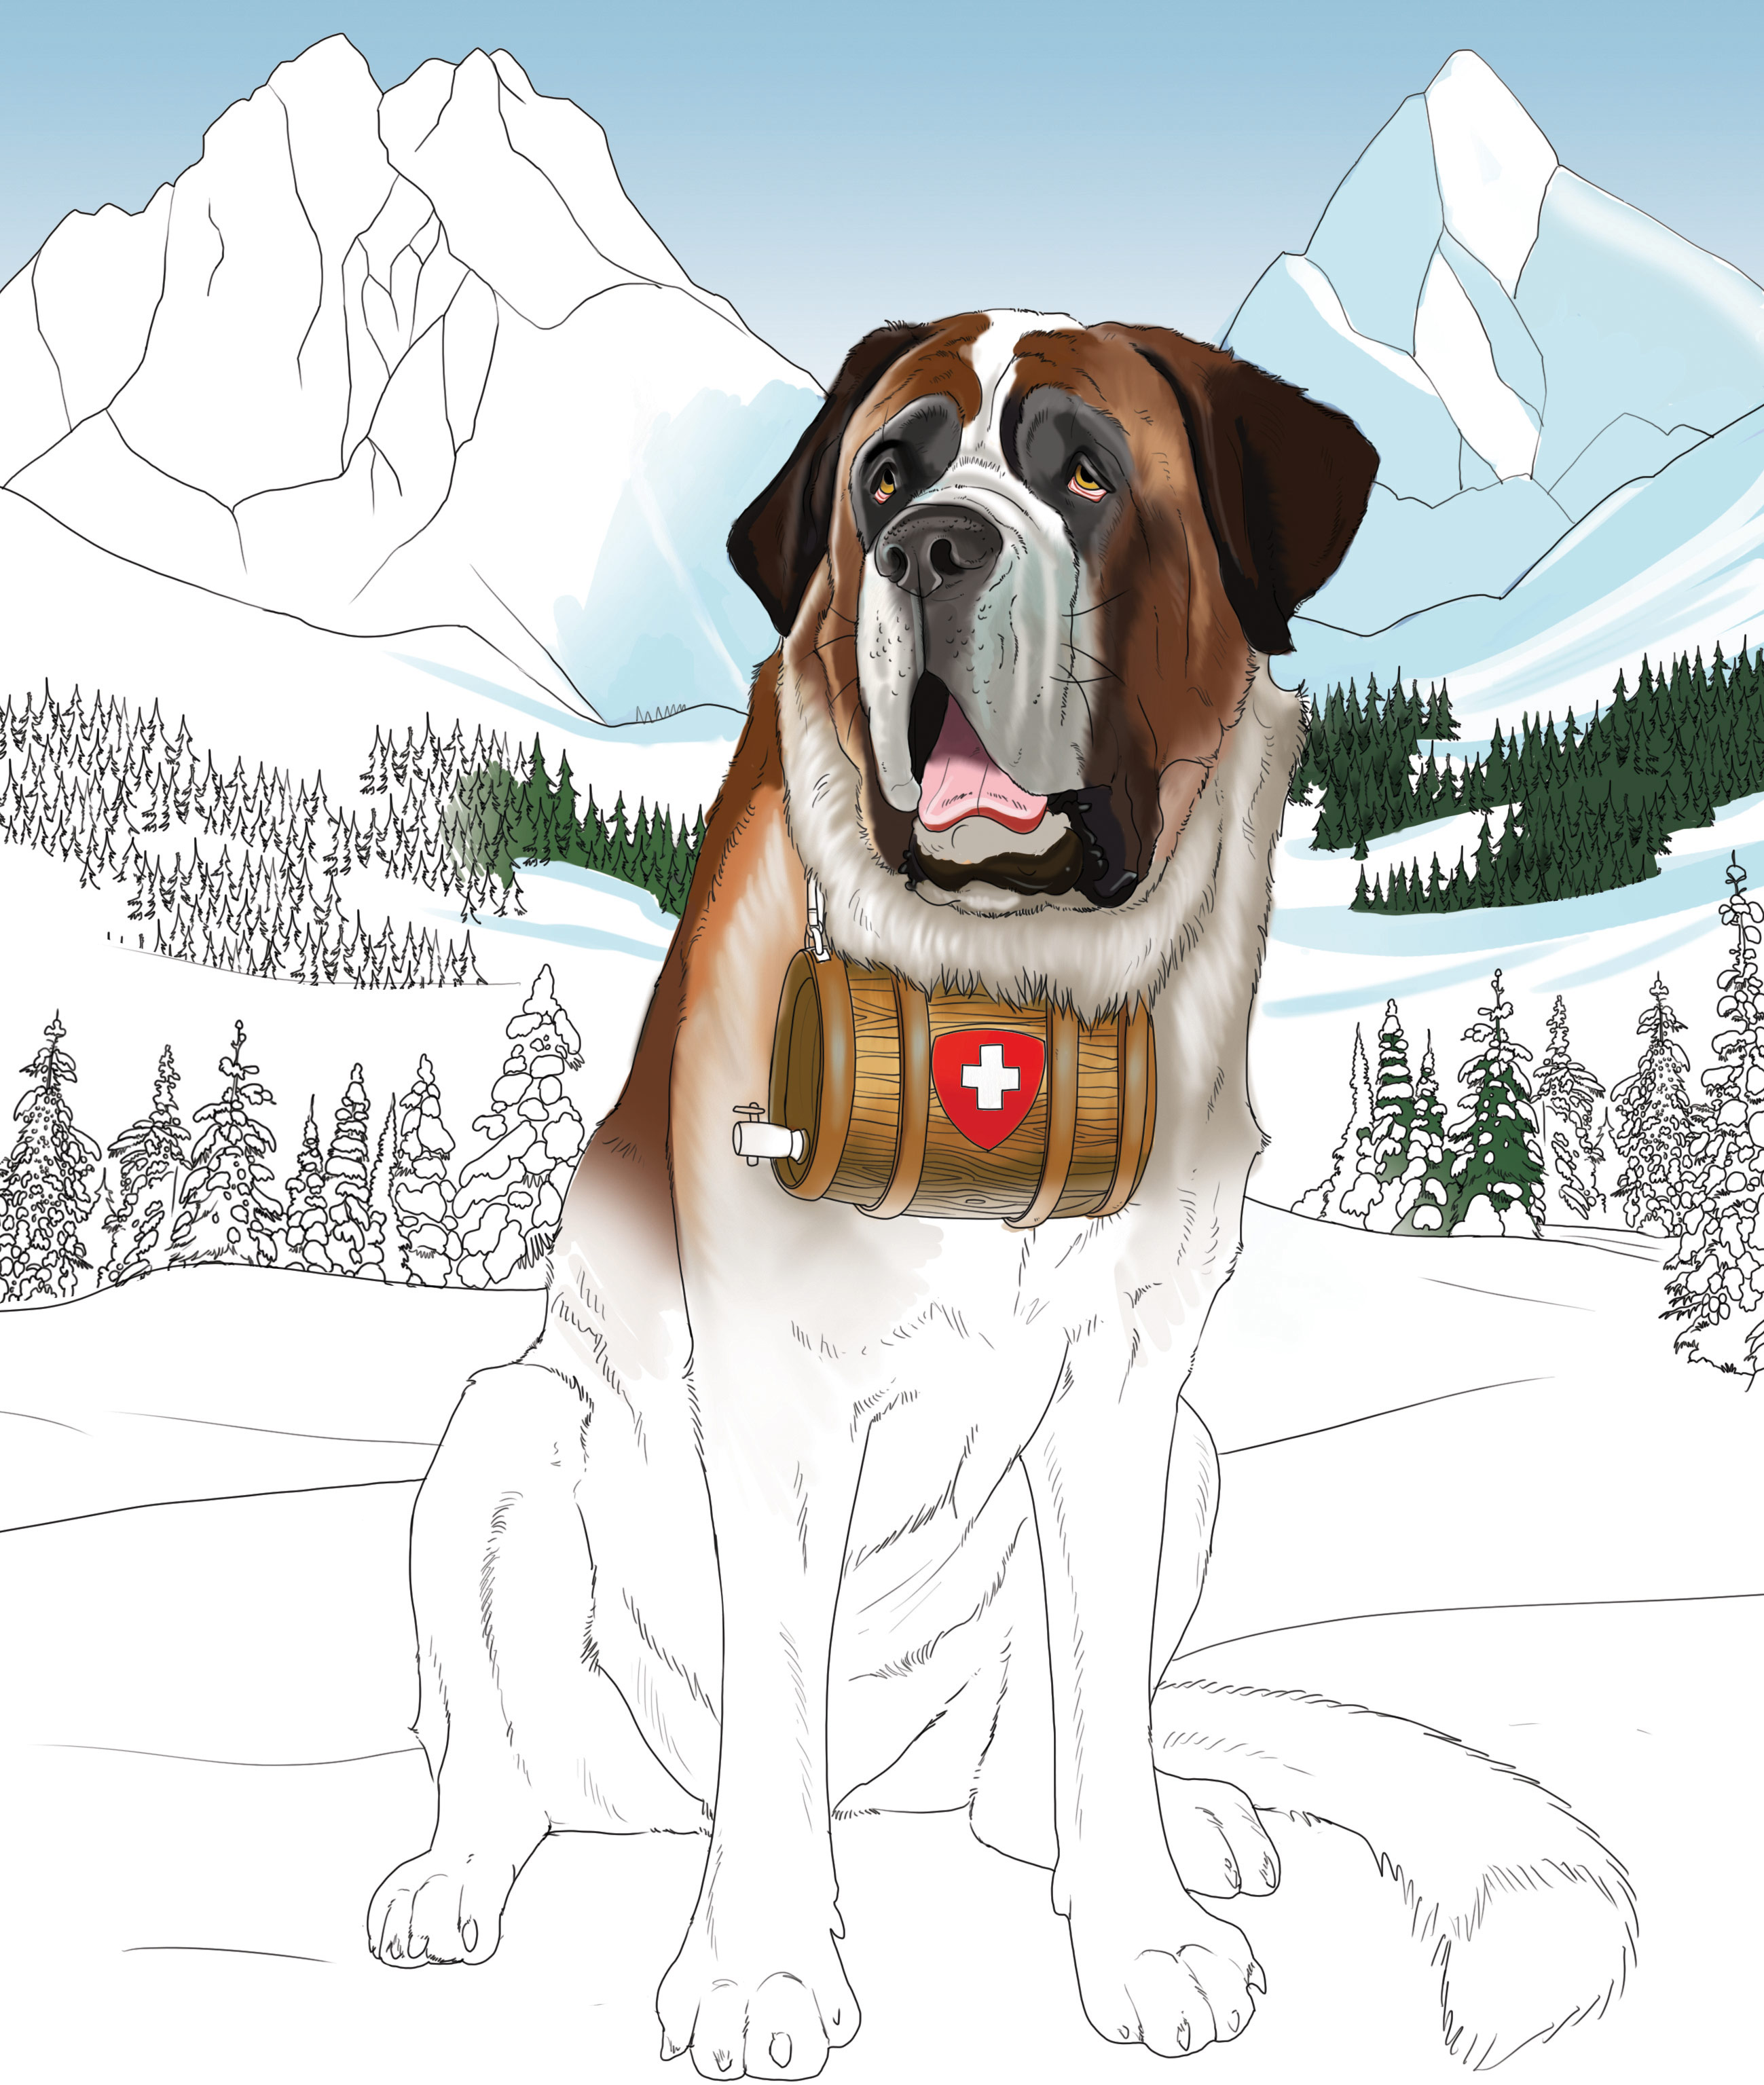 Coloring page shows St. Bernard dog with snowy mountain background. Dog is wearing a flask around his neck.